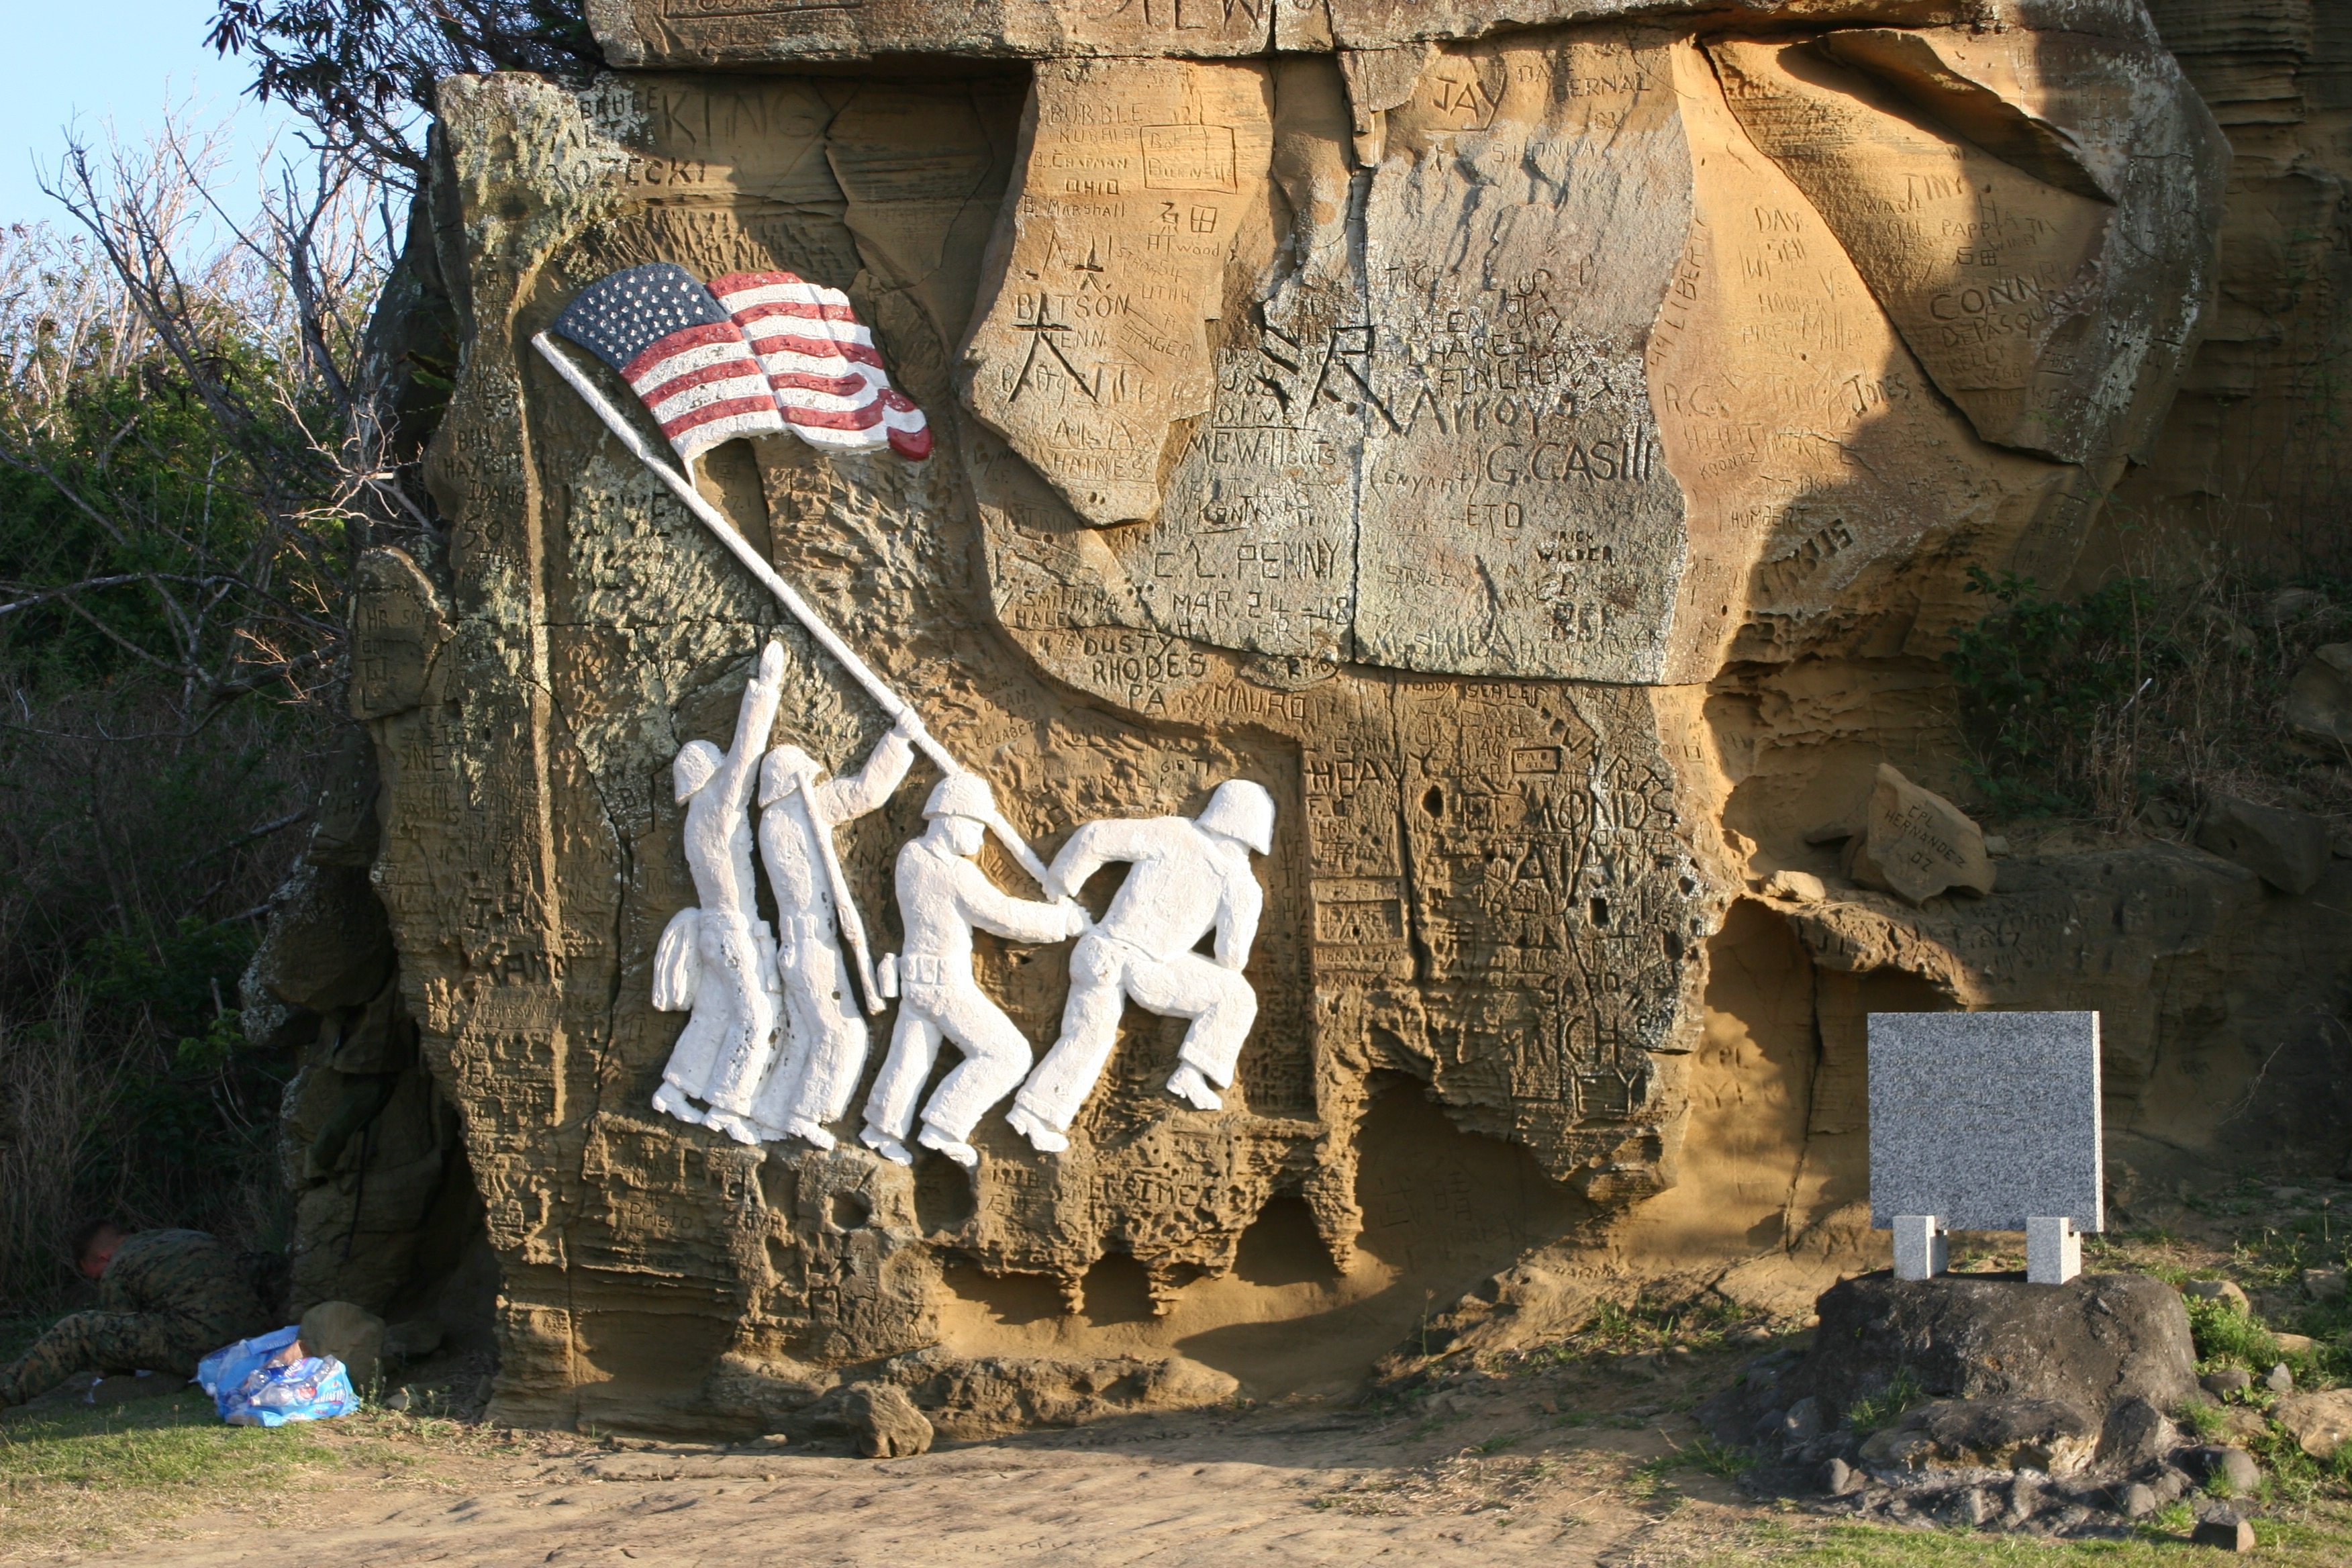 Replica of Iwo Jima flag raising etched on rock